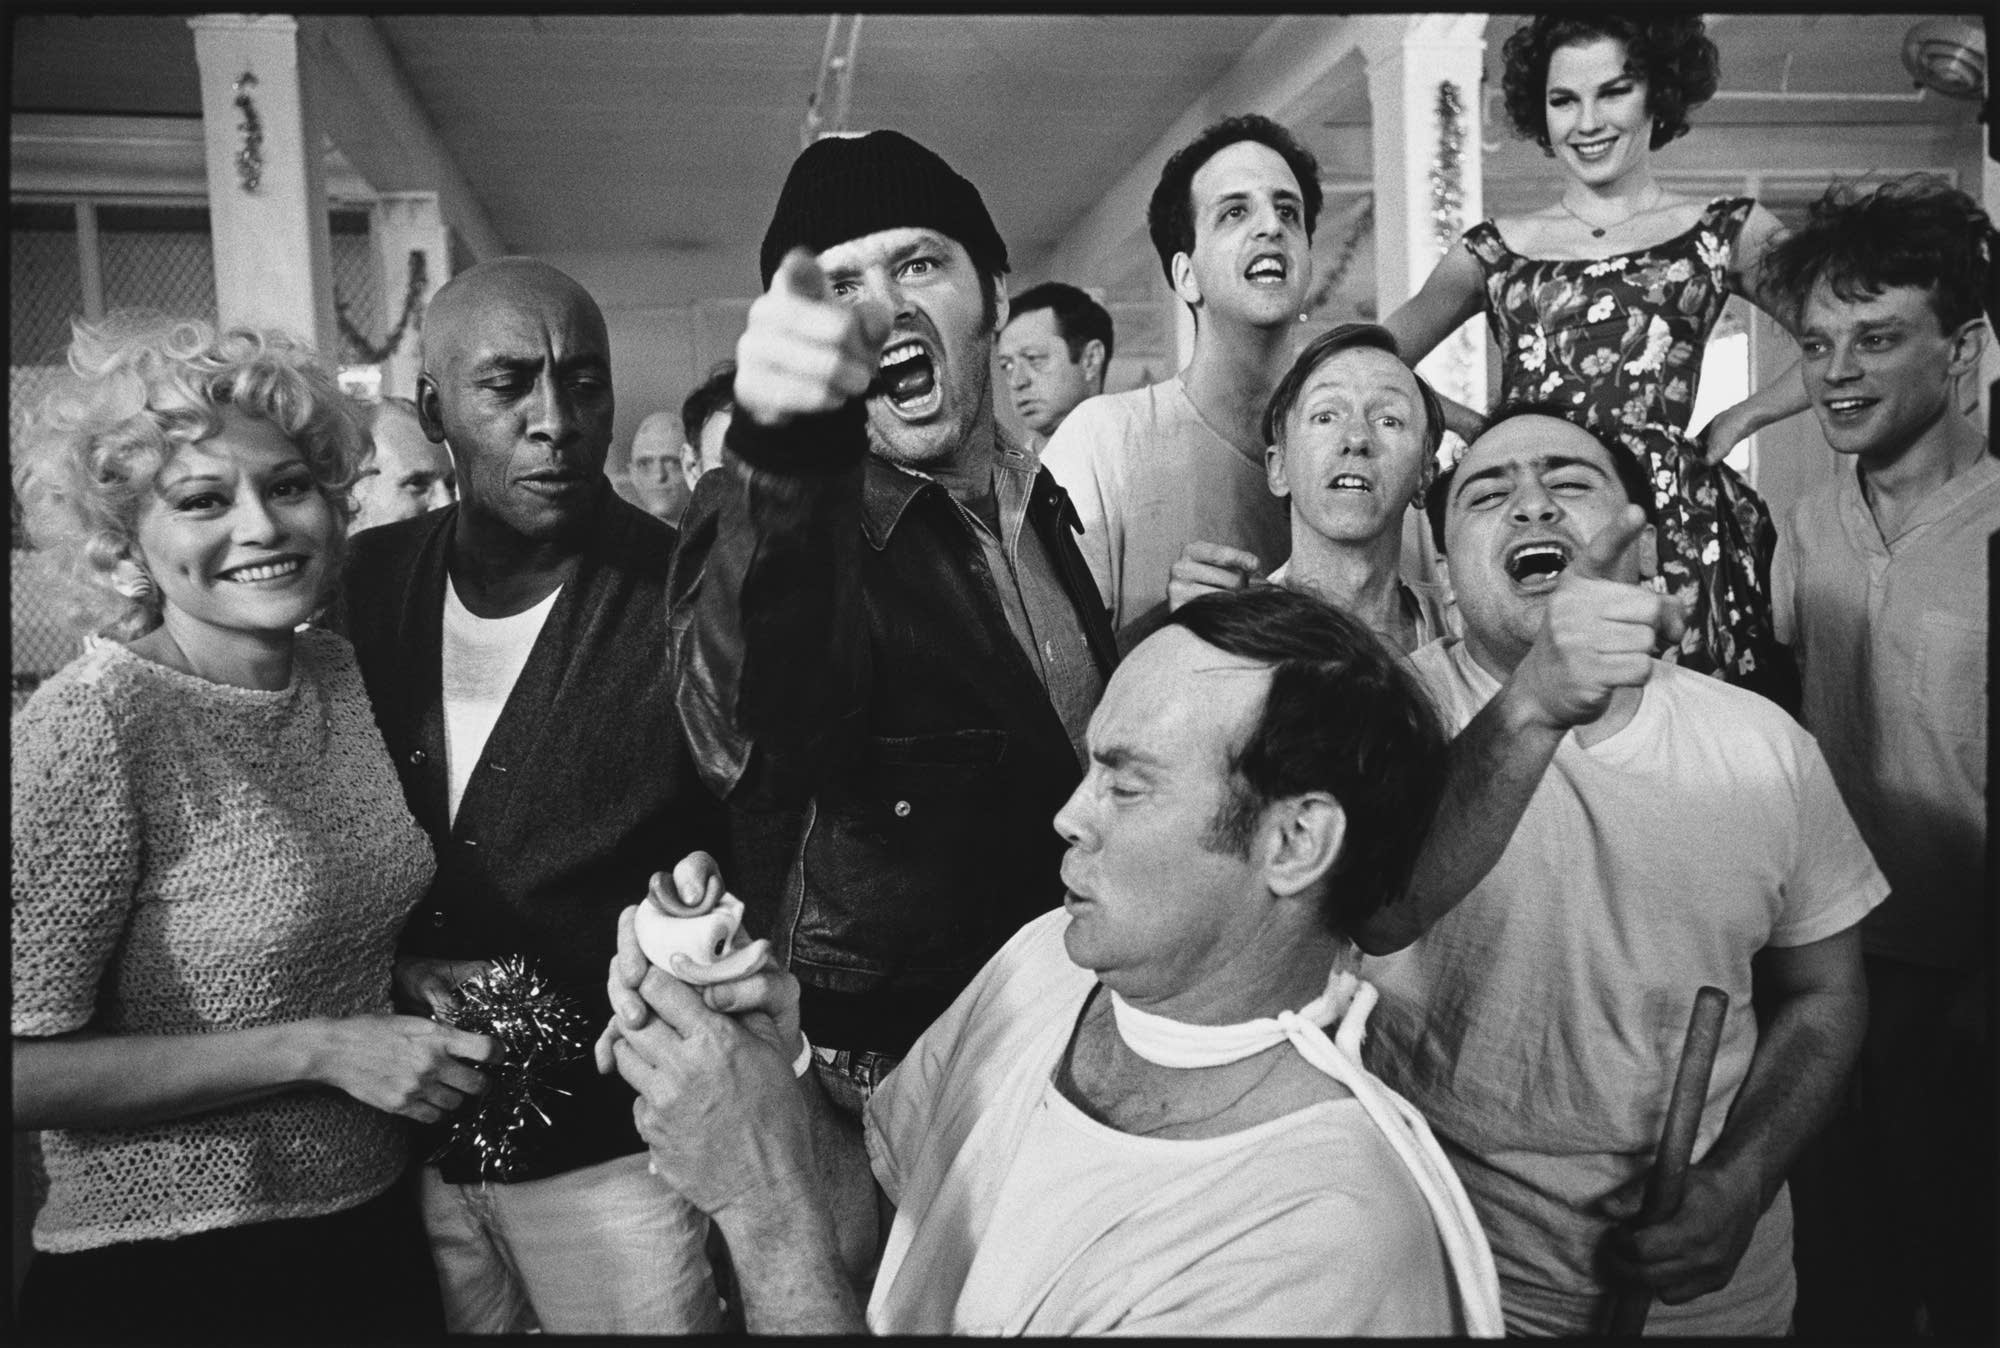 Mary Ellen Mark, One Flew Over the Cuckoo's Nest